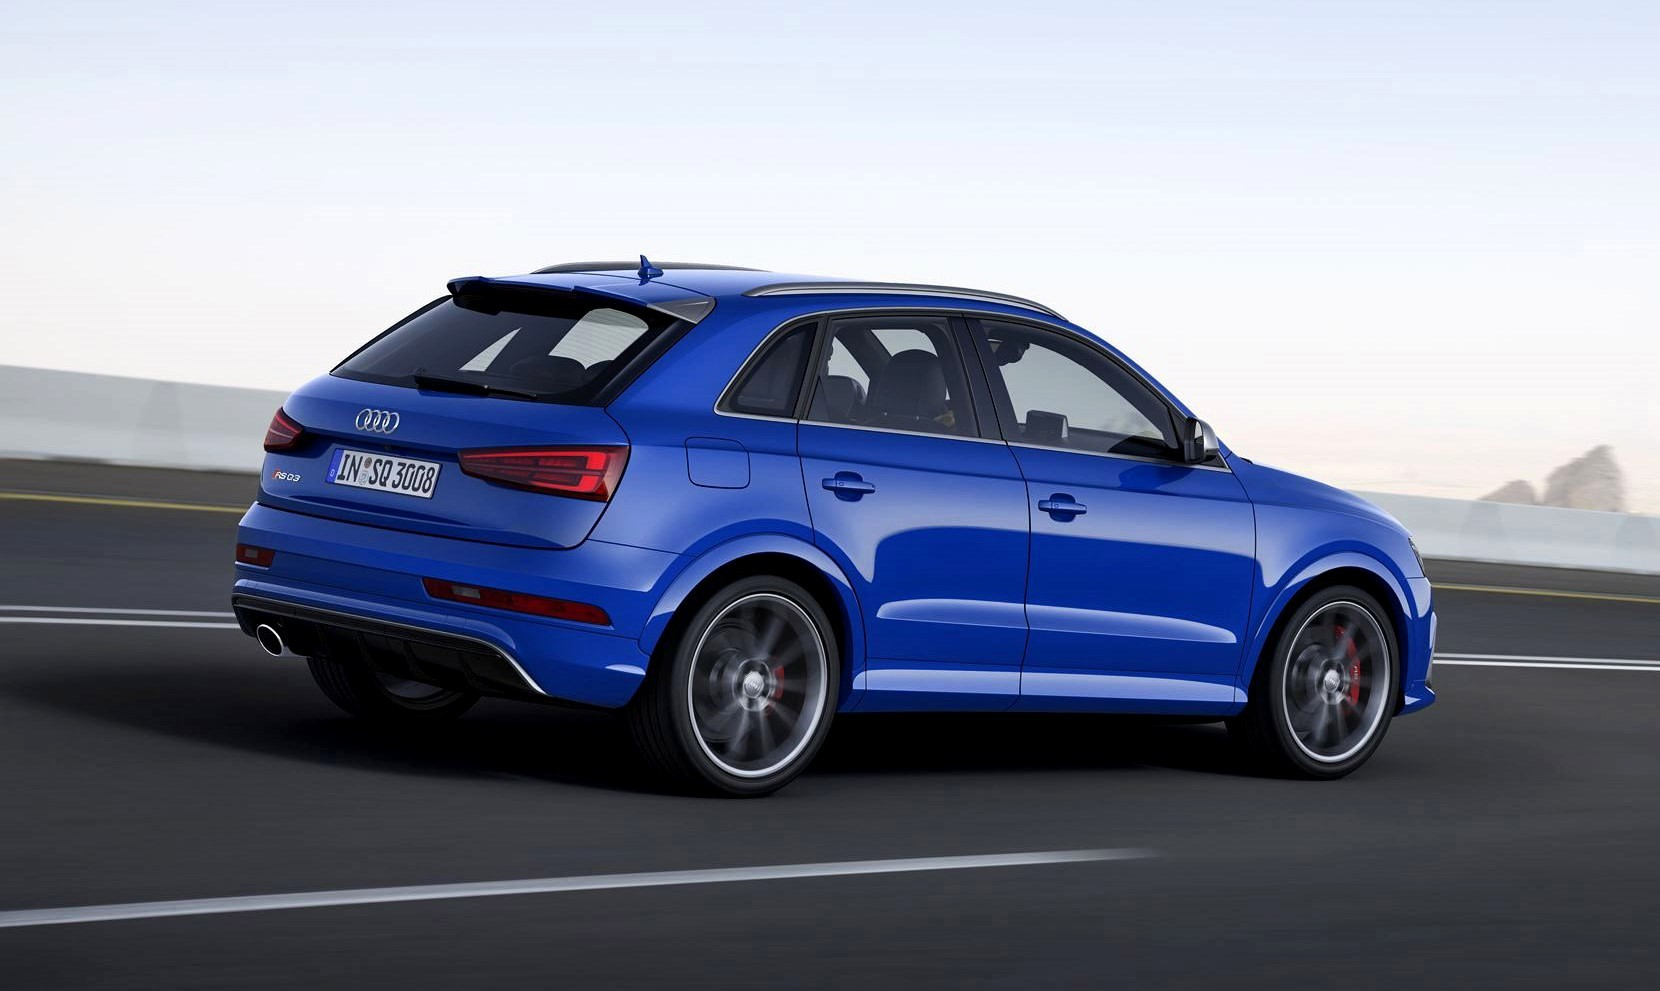 367hp 2017 audi rs q3 performance latest rs uv delivers stonking power style upgrades. Black Bedroom Furniture Sets. Home Design Ideas